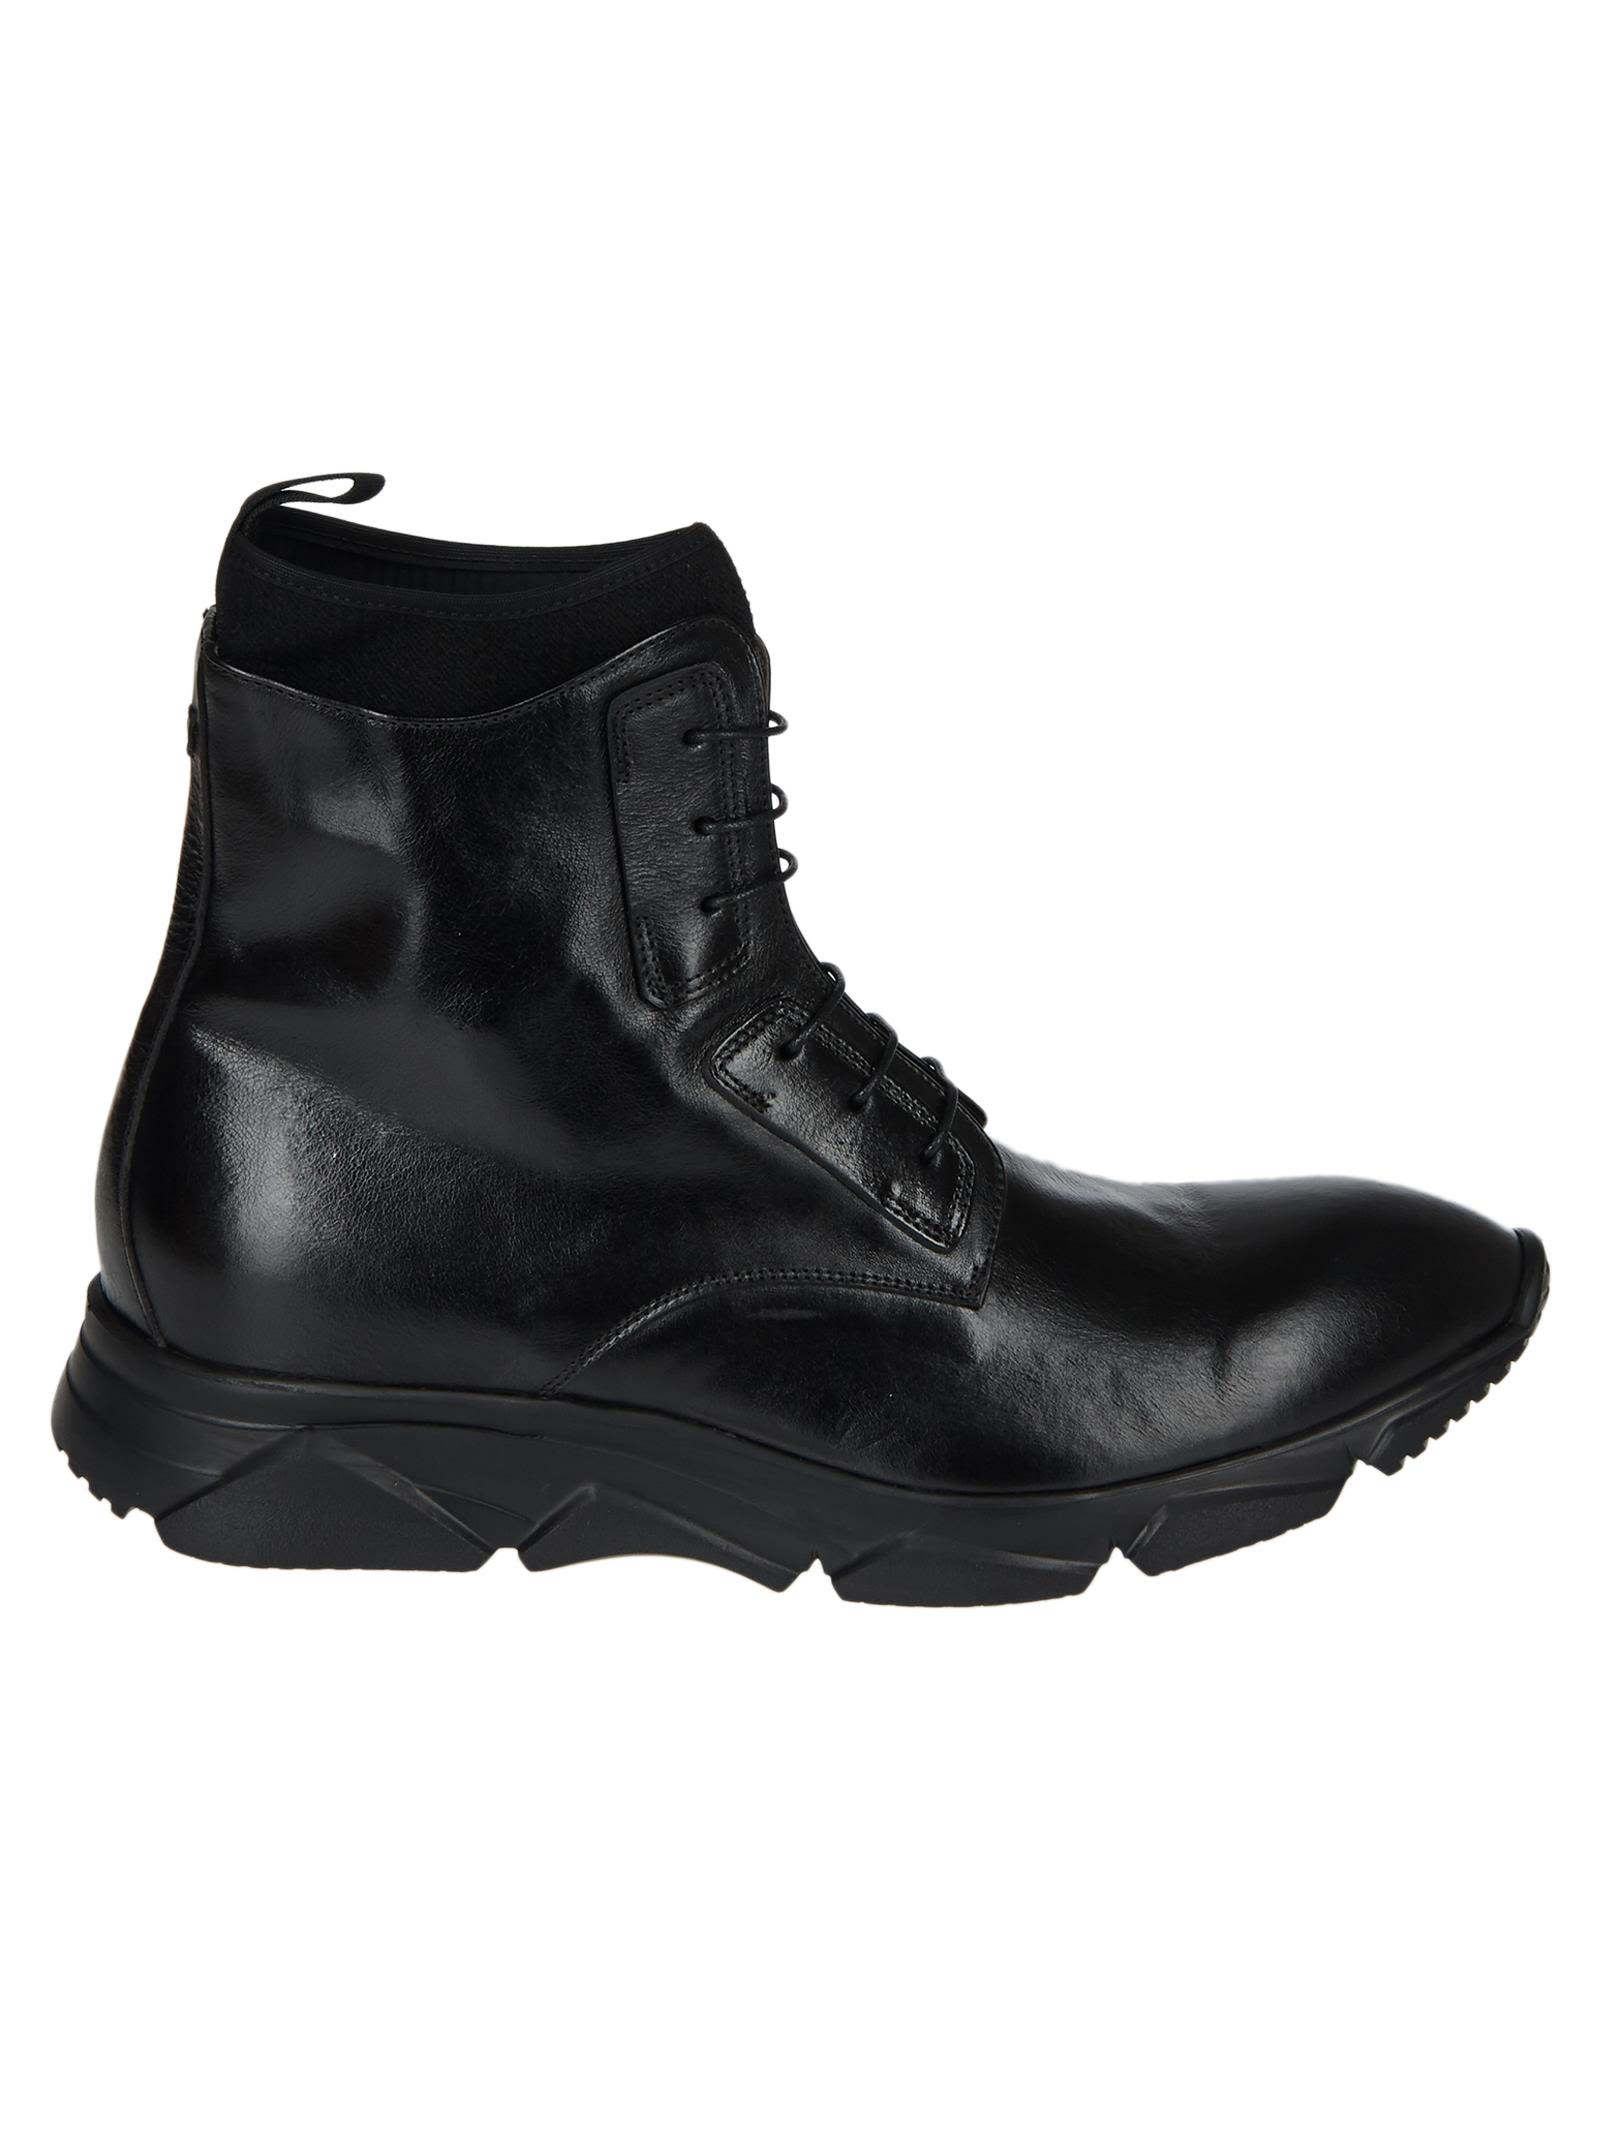 RAPARO Lace-Up Boots in Black